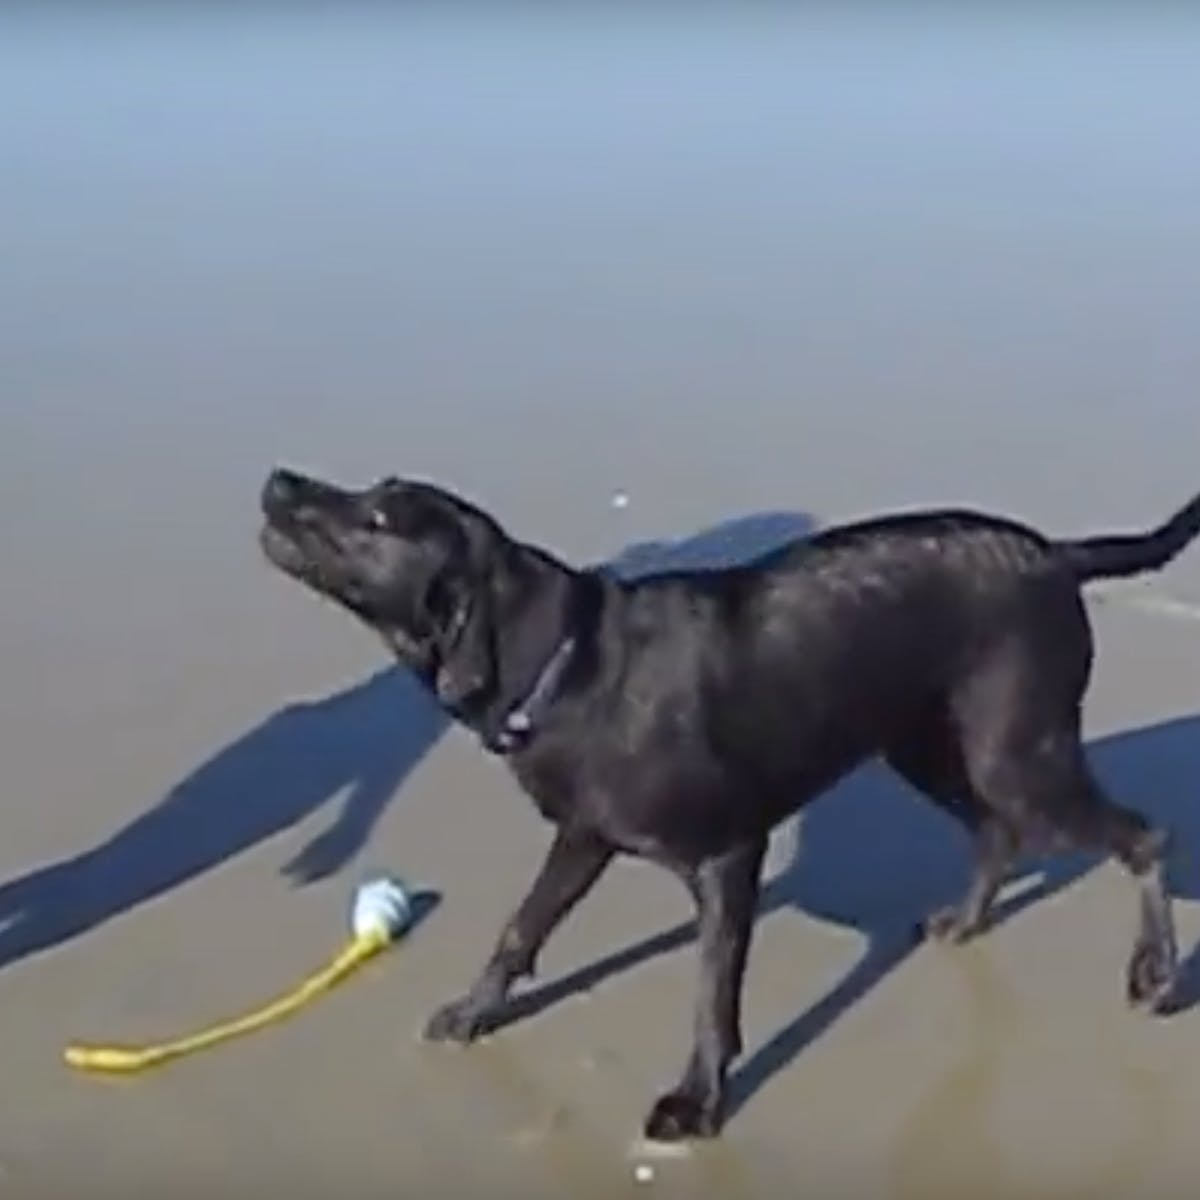 The Viral Video of Dog Squirting Butt Water, Explained by